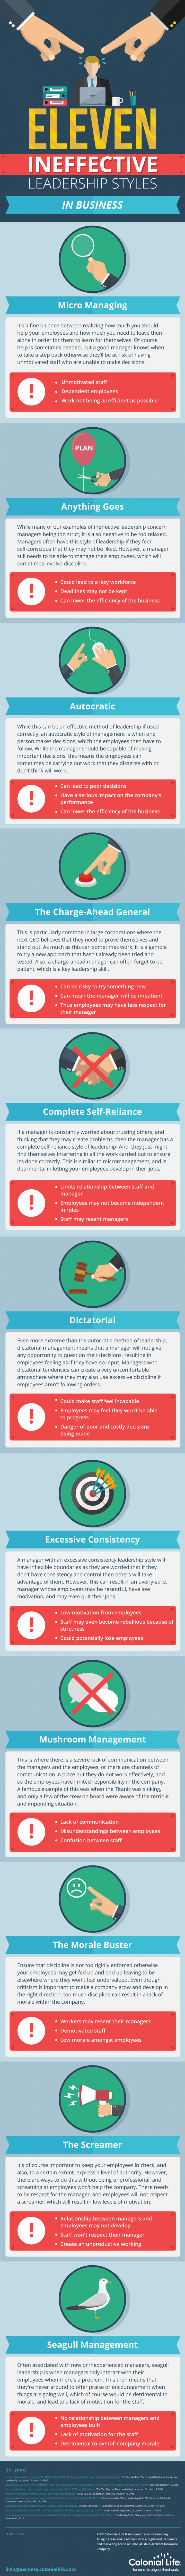 infografik-ineffective-leadership-styles